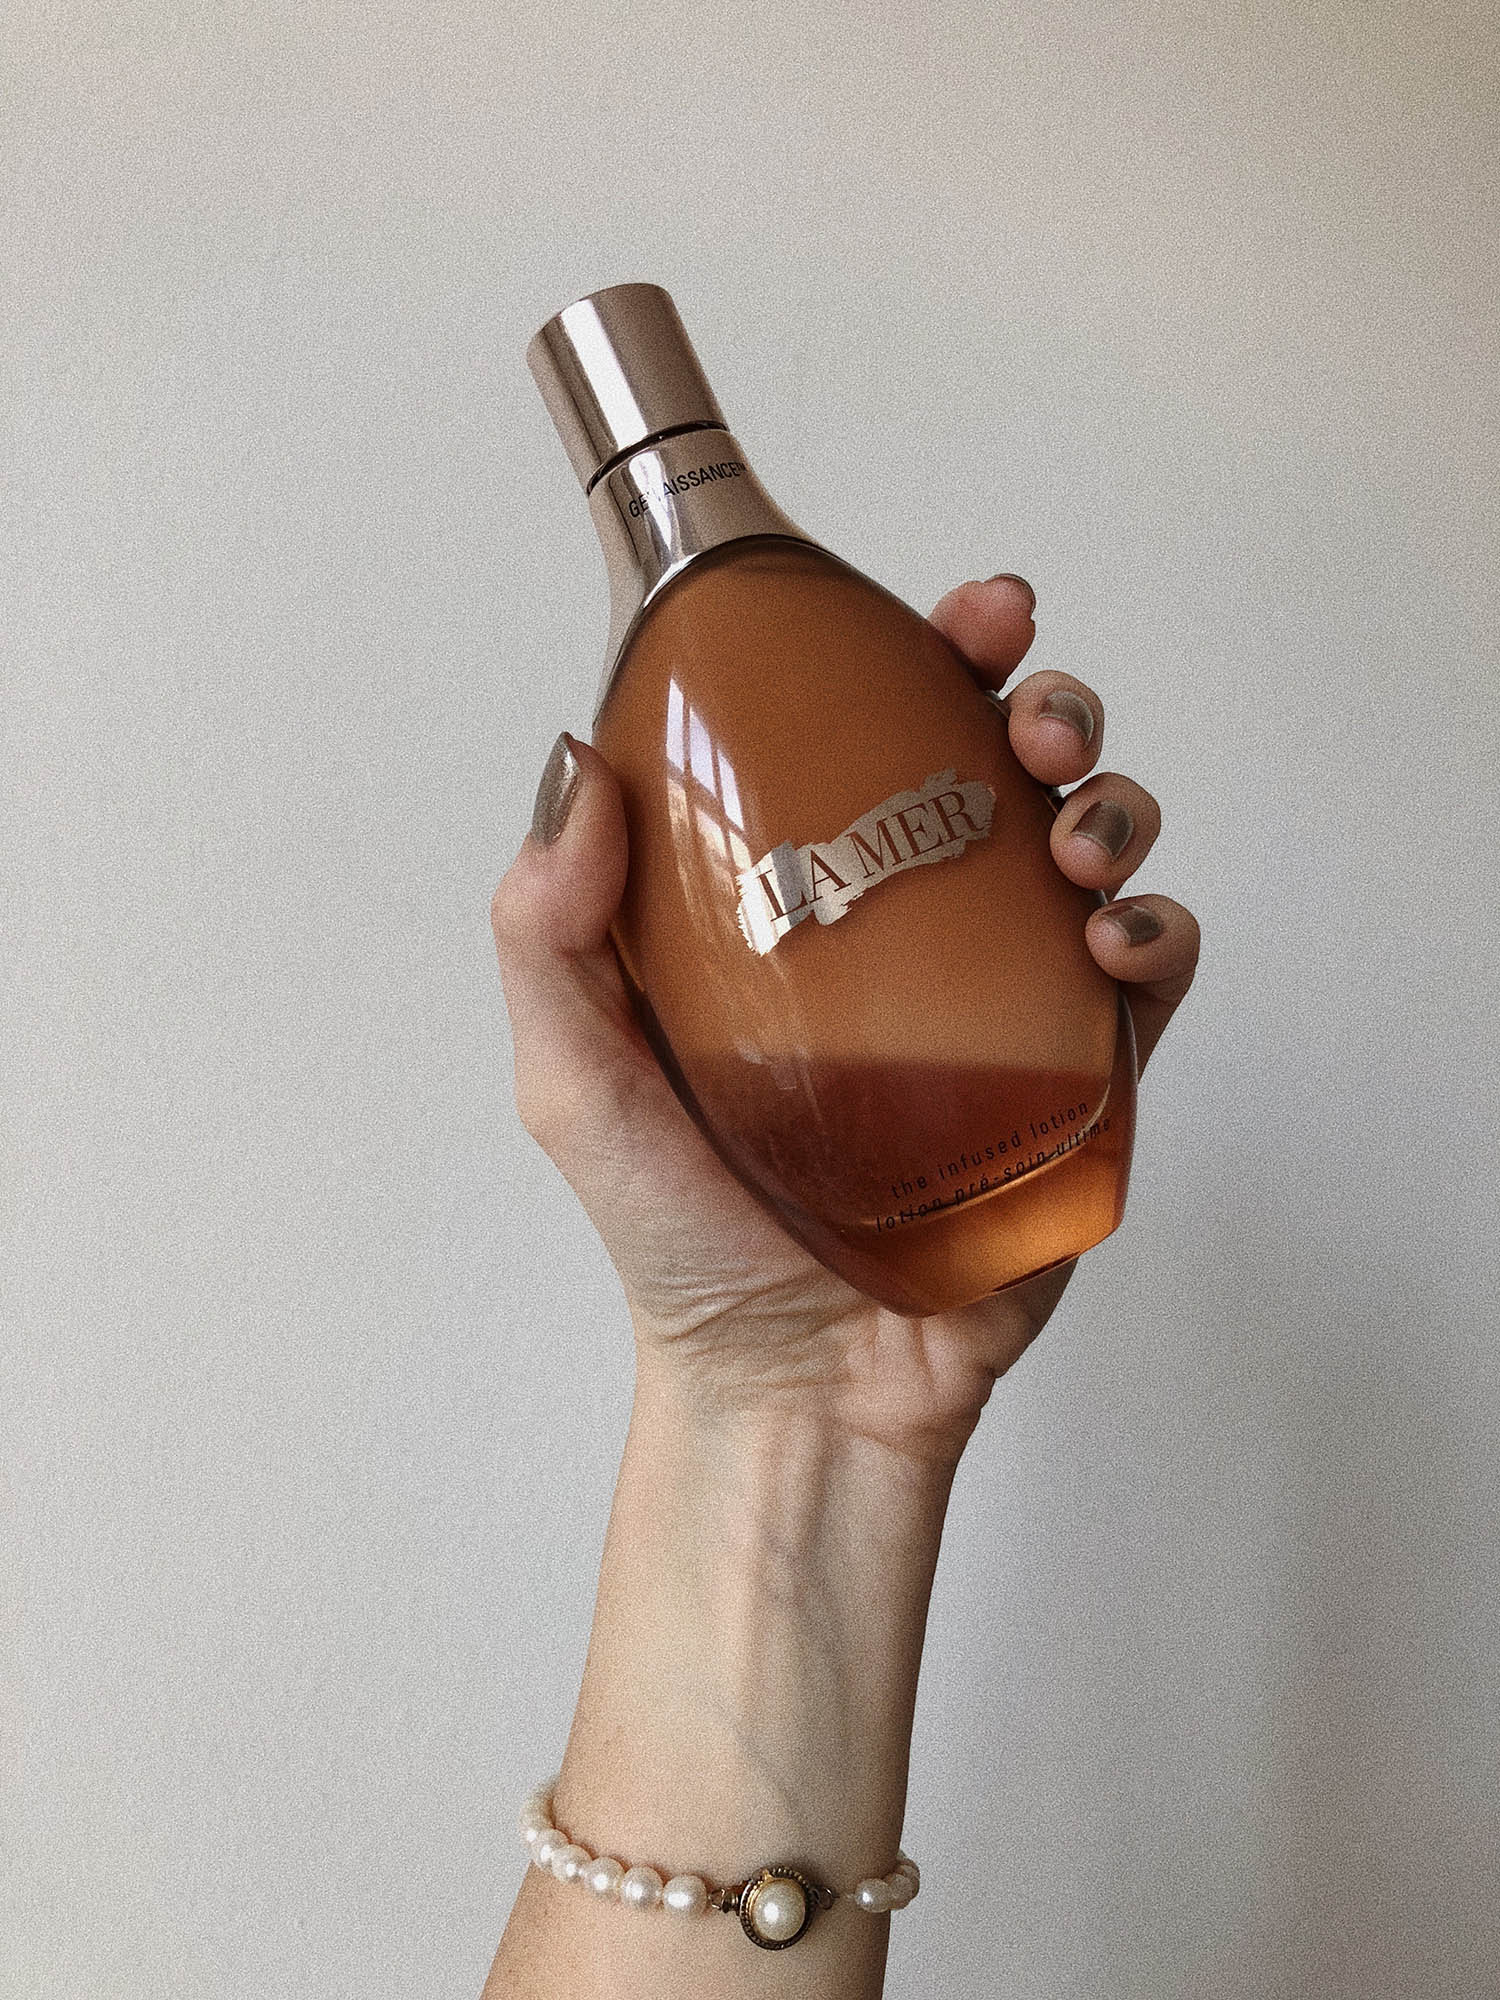 The Infused Treatment Lotion, 310 CHF